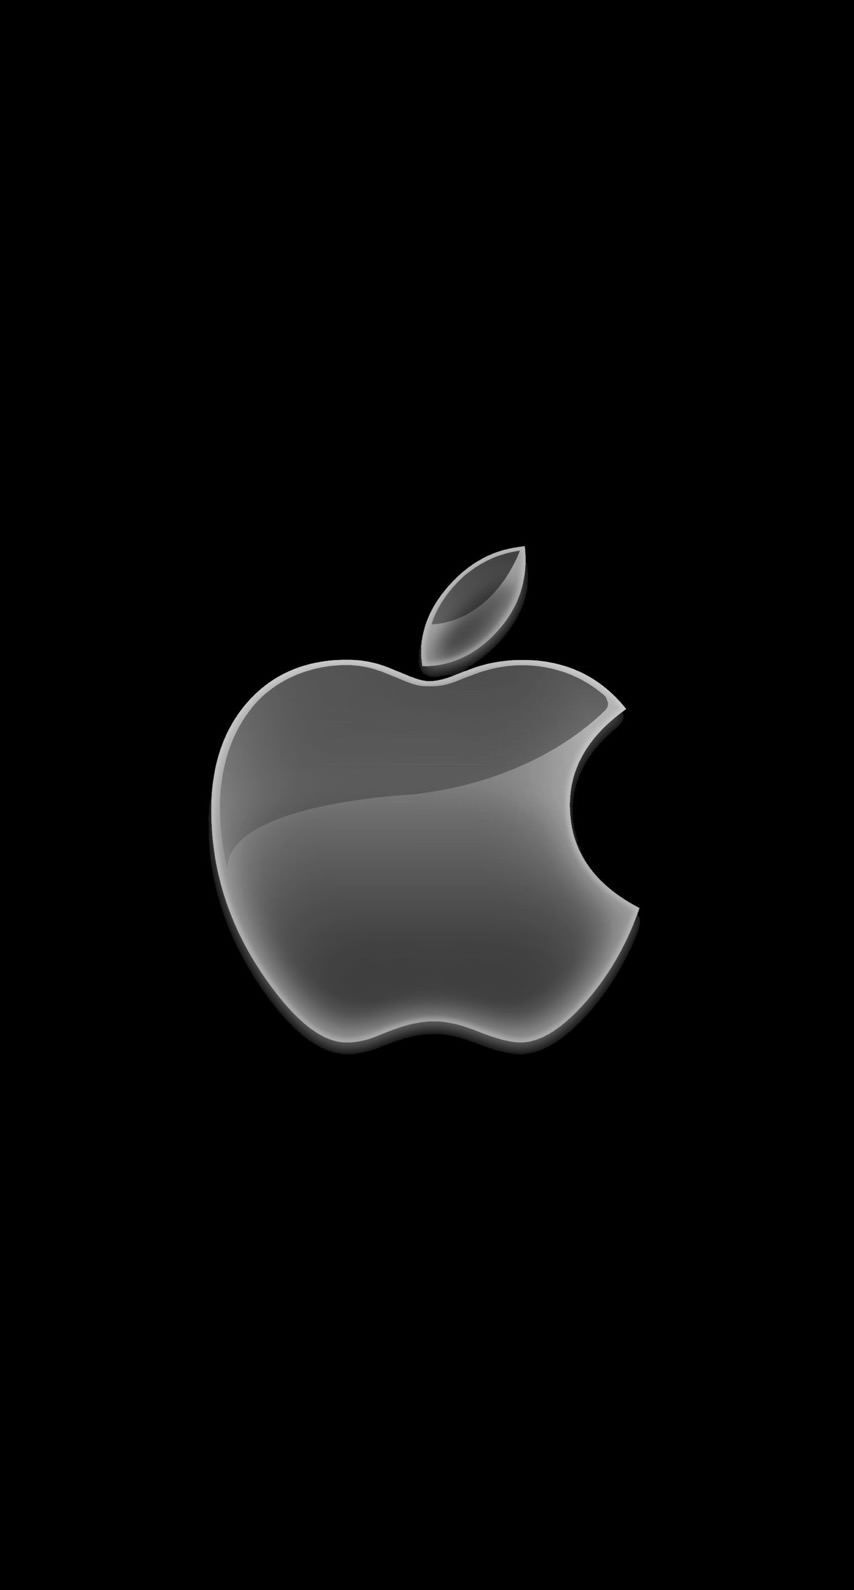 Apple Logo Black Cool Wallpaper Sc Iphone6s Apple Logo Wallpaper Iphone Black Apple Wallpaper Apple Wallpaper Iphone